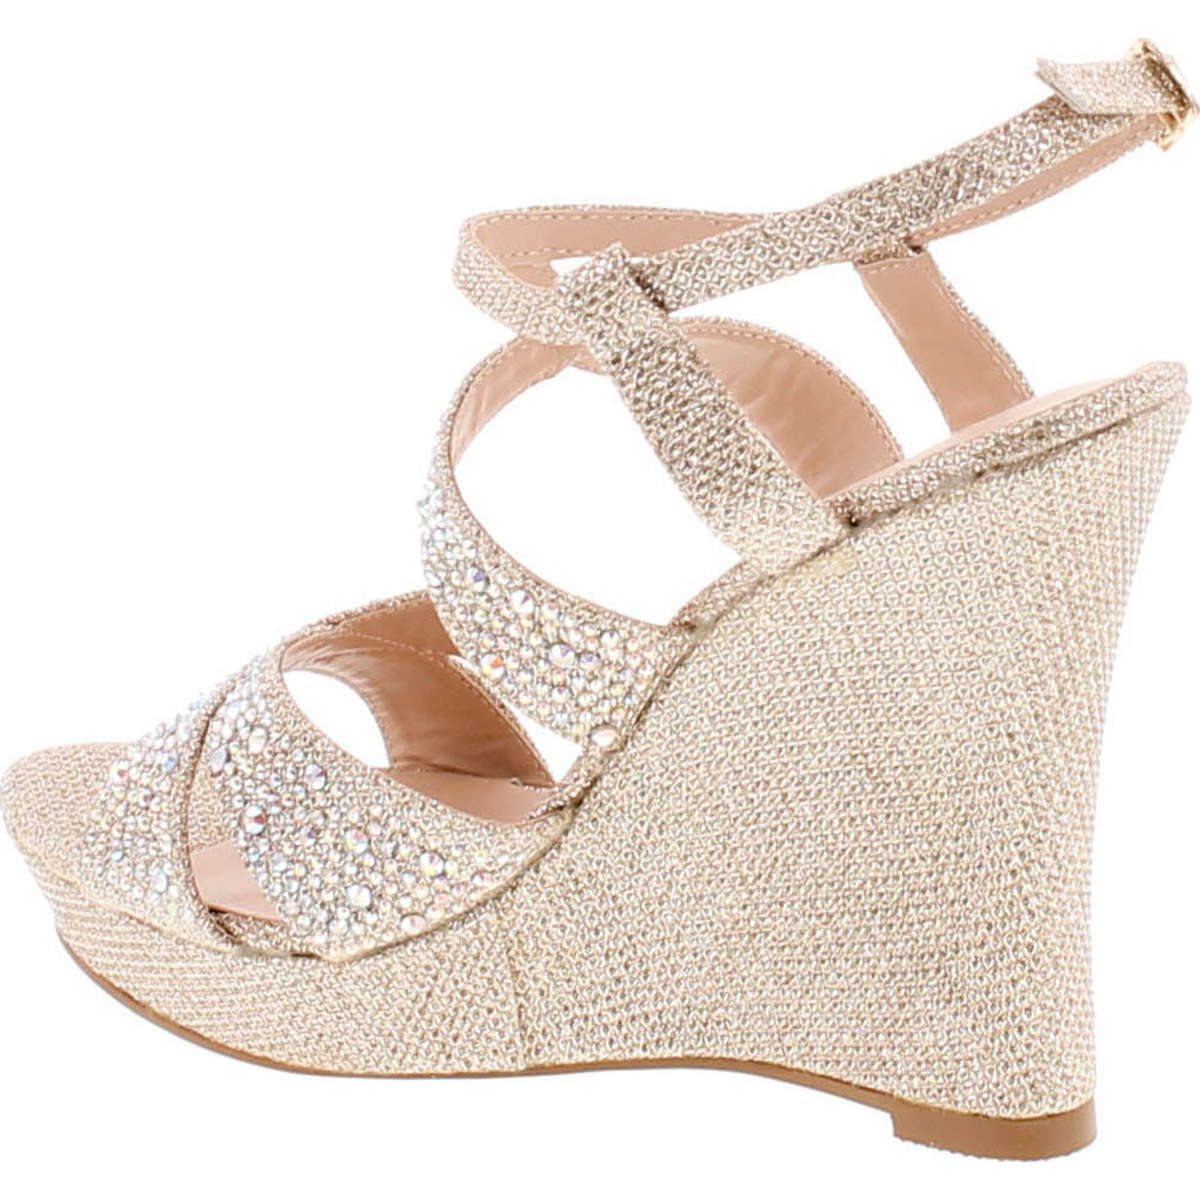 0cc1f093d7fc De Blossom ALLE-8 High Heel Wedge Sandal with Crystal Embellishment ...